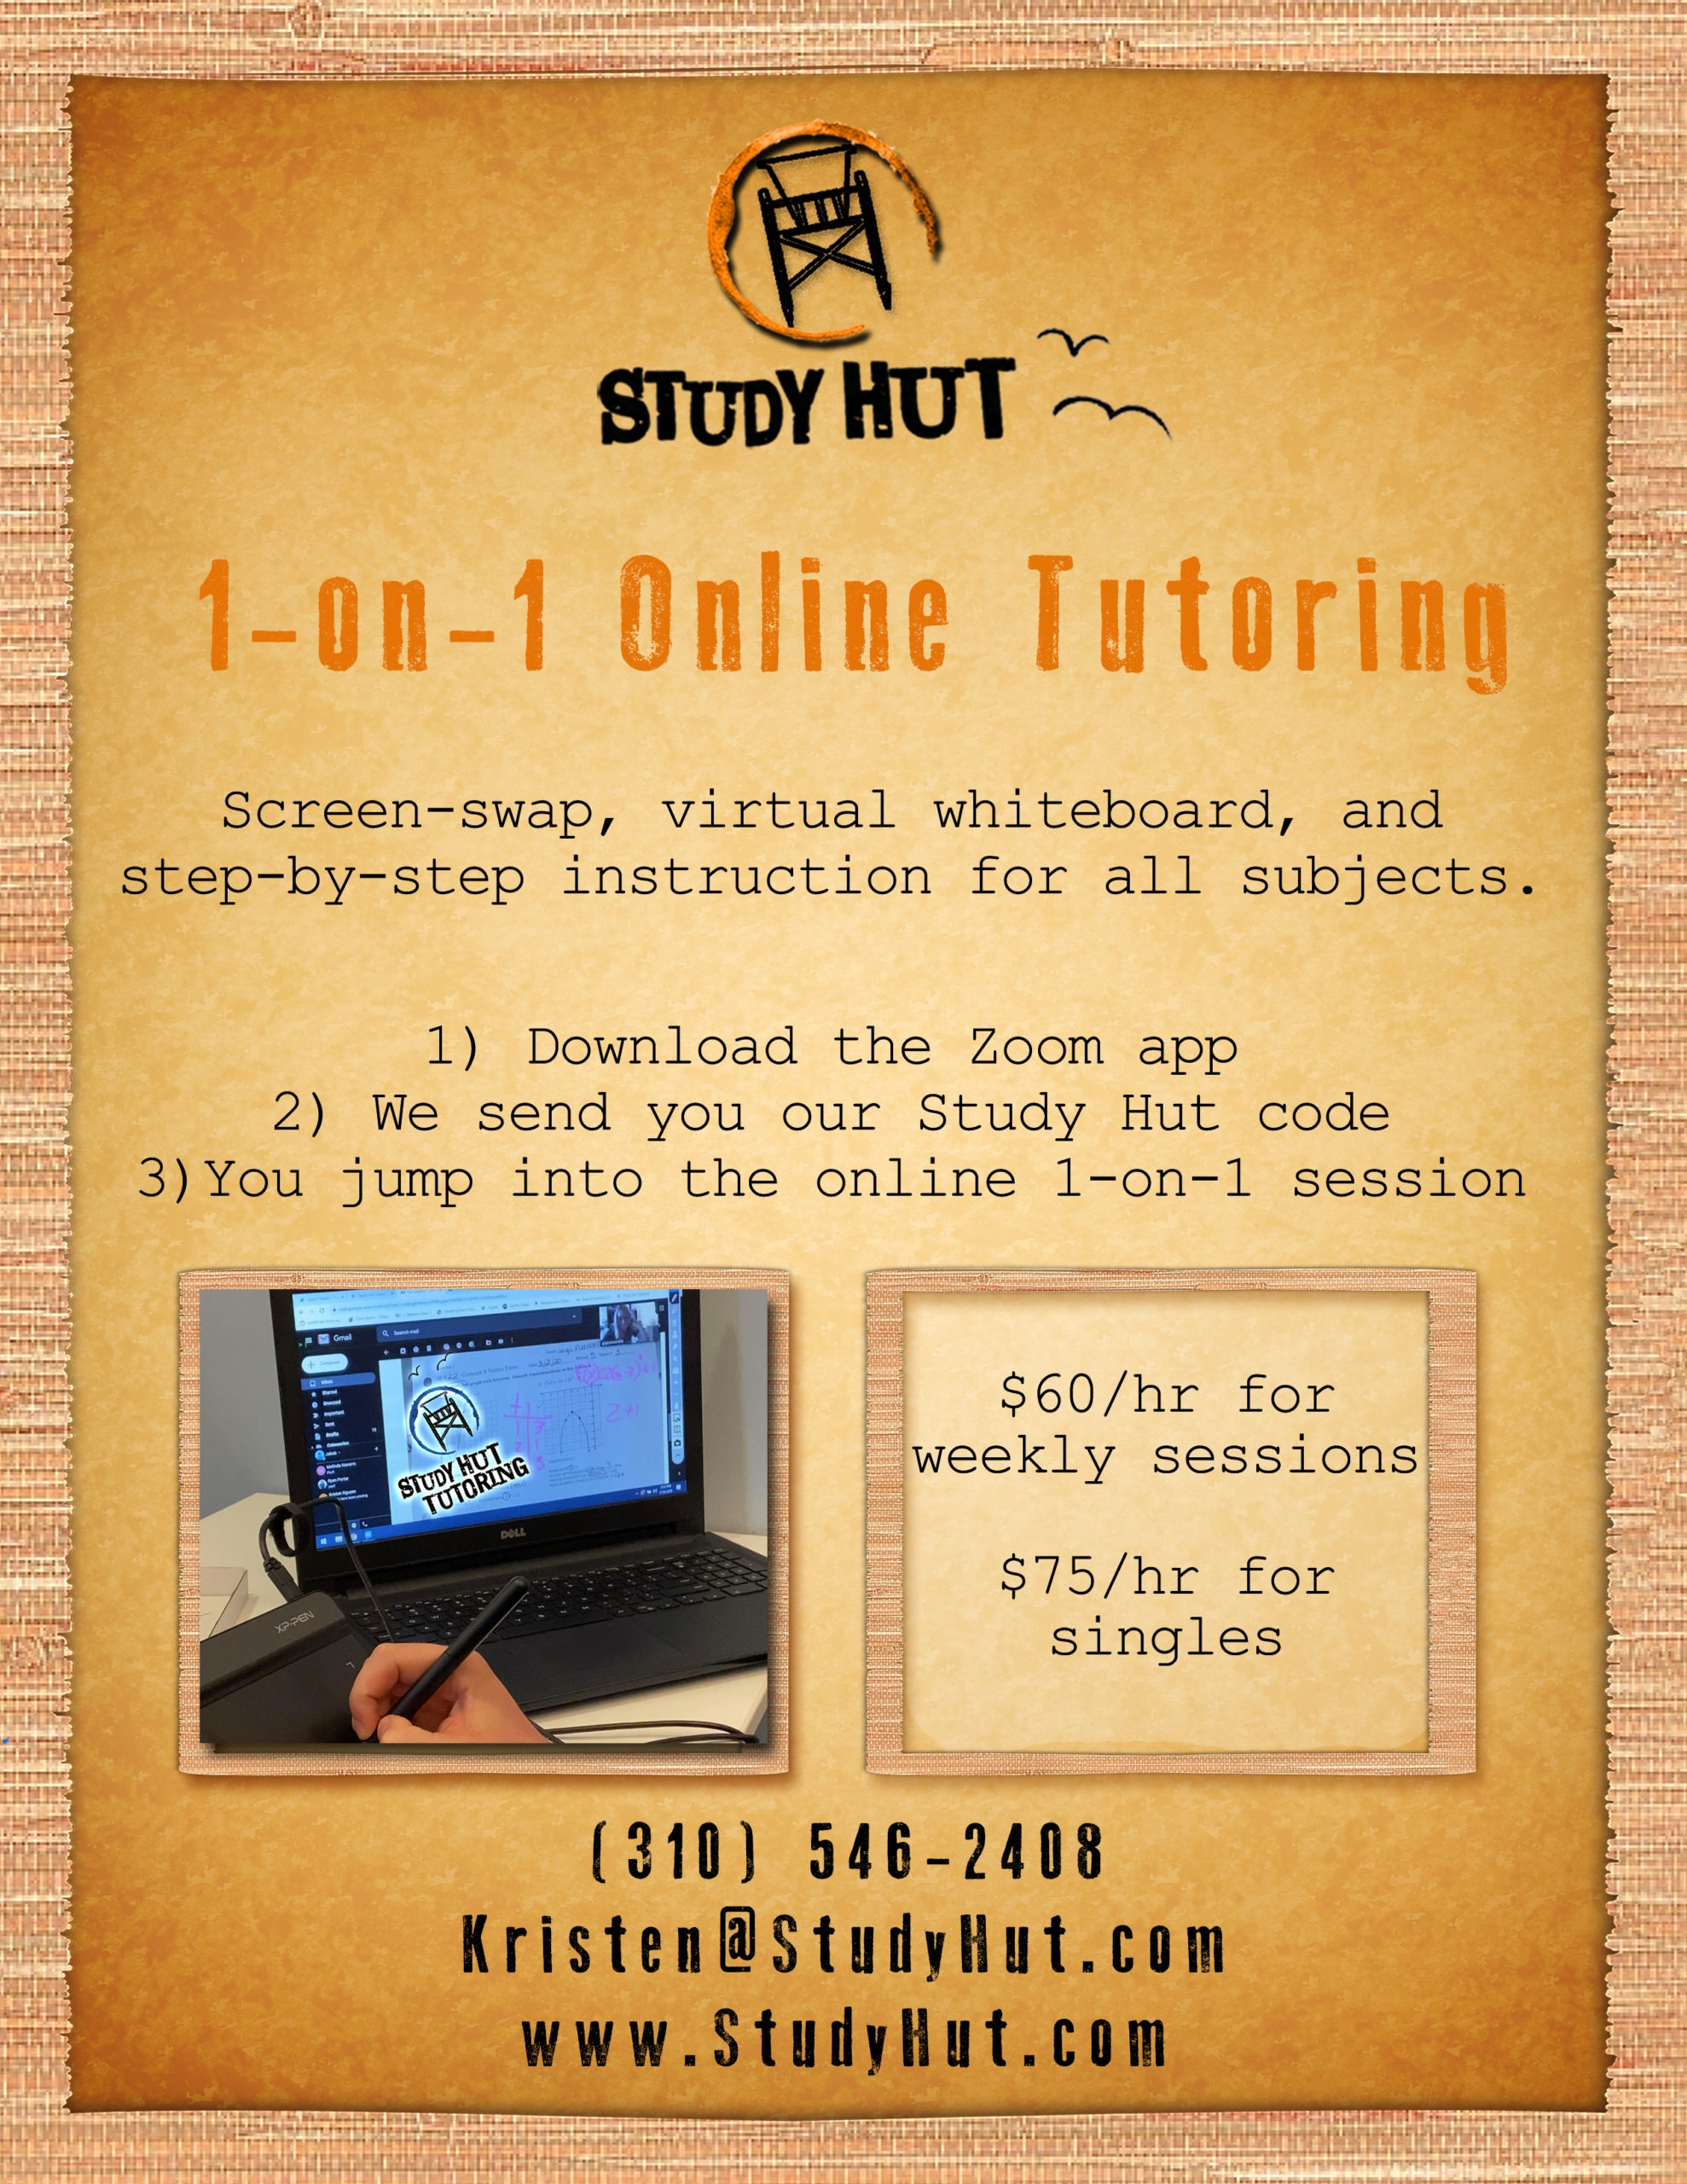 Online Tutoring Services In The South Bay Study Hut - Online Study App Download